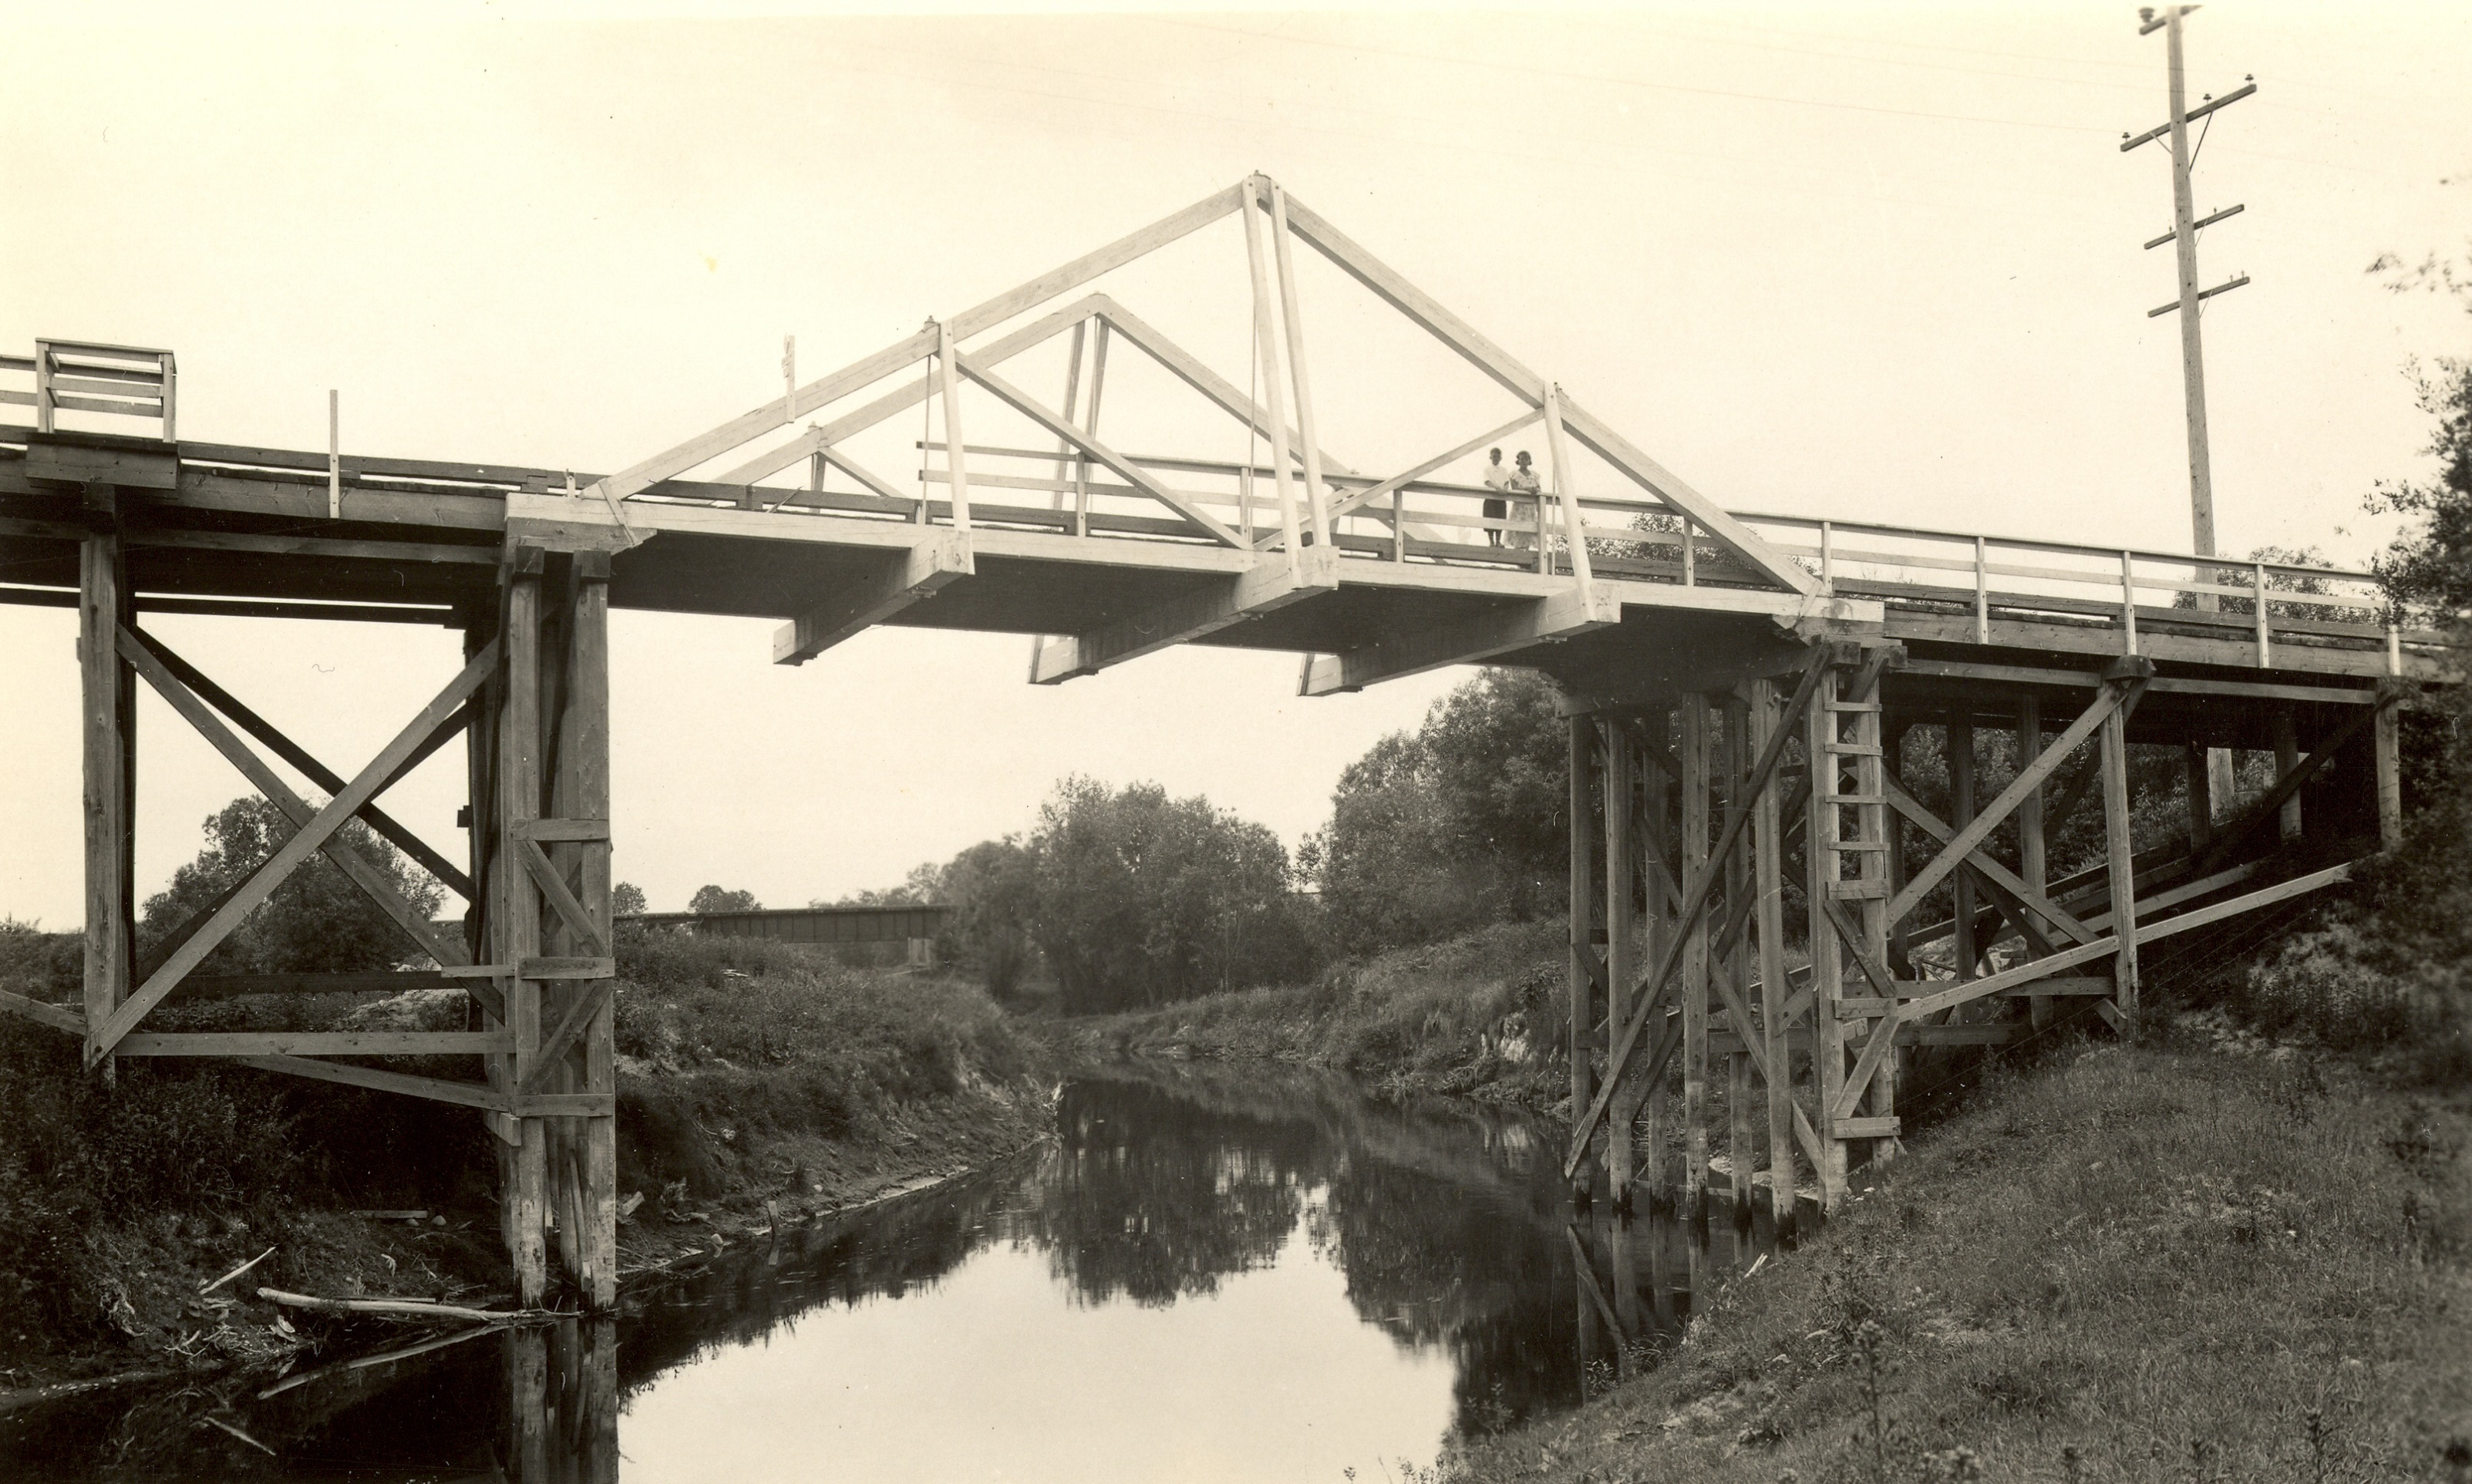 Bridge_no_1883A__June_30_1933__TPBlum_2